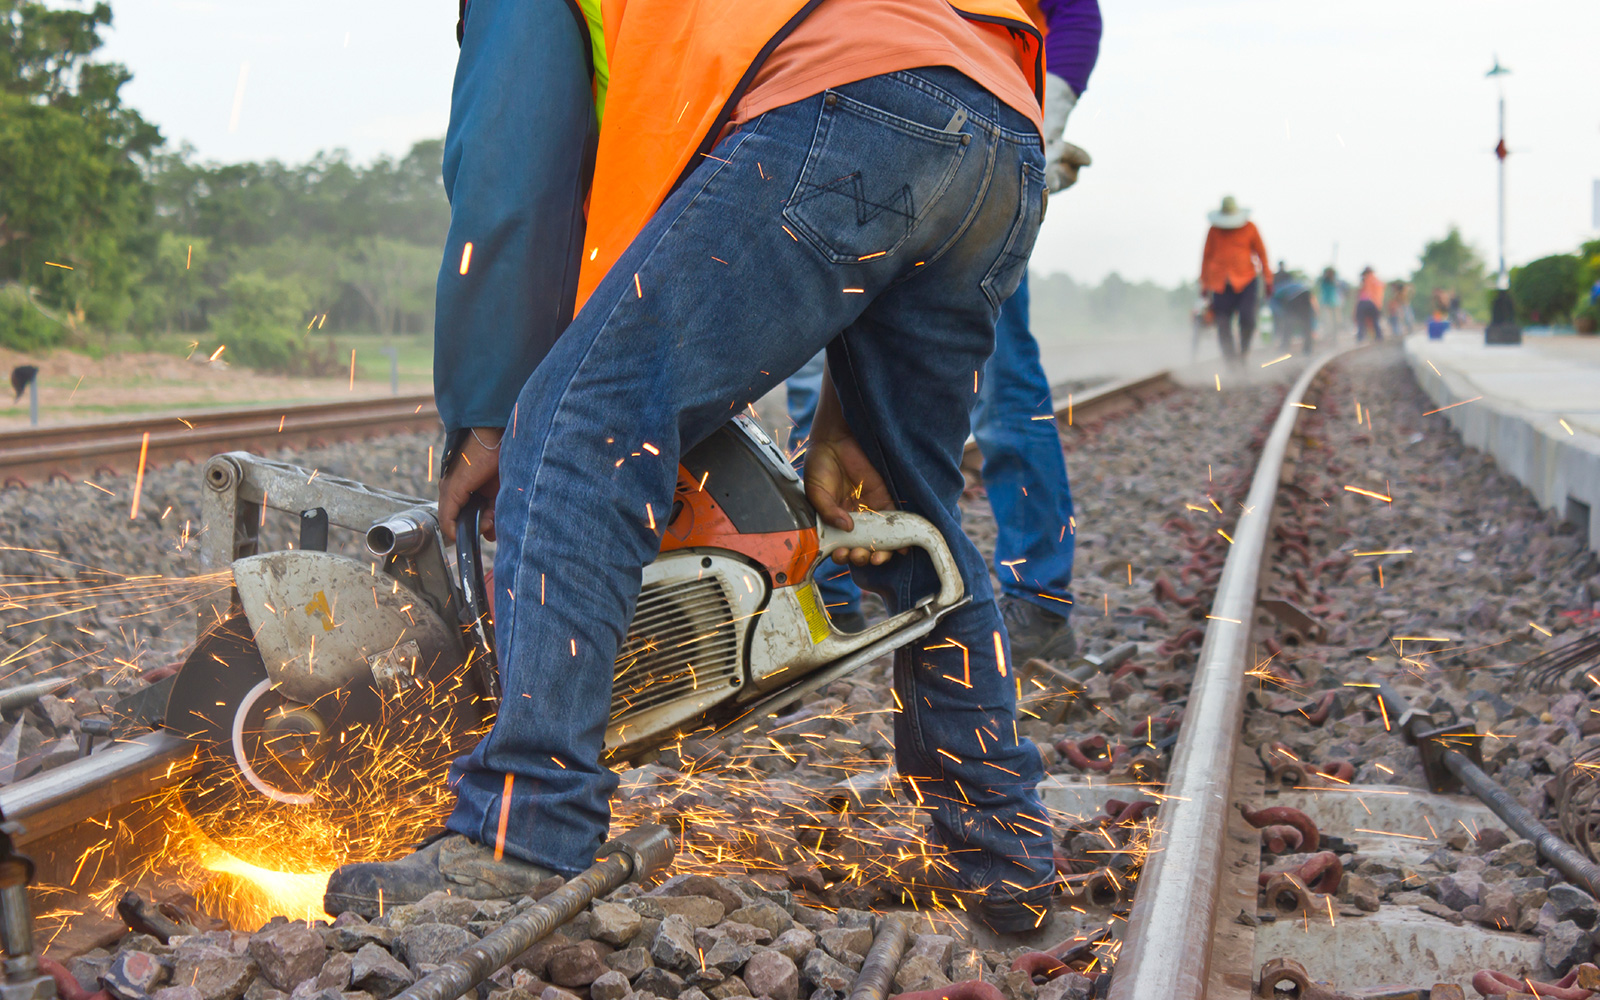 Sparks fly from a circular saw operated by a worker cutting a rail on a railway